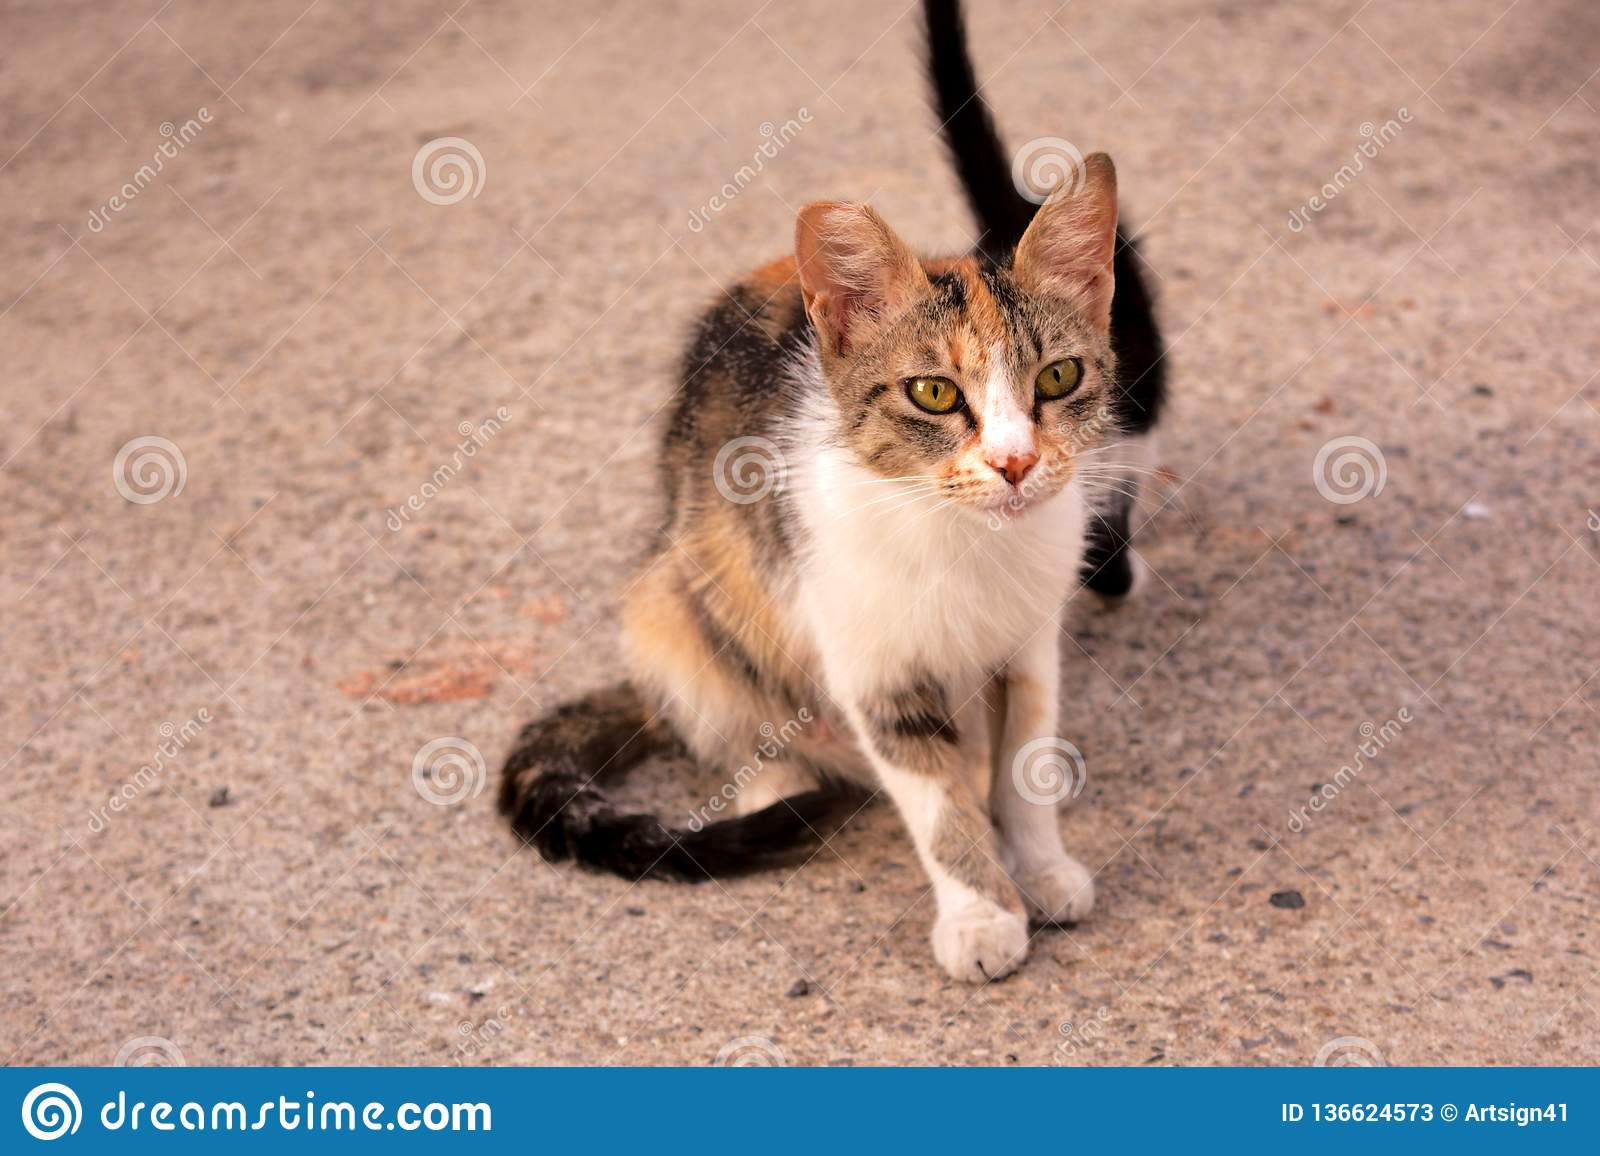 Calico Tabico stray cat mum with her kitten